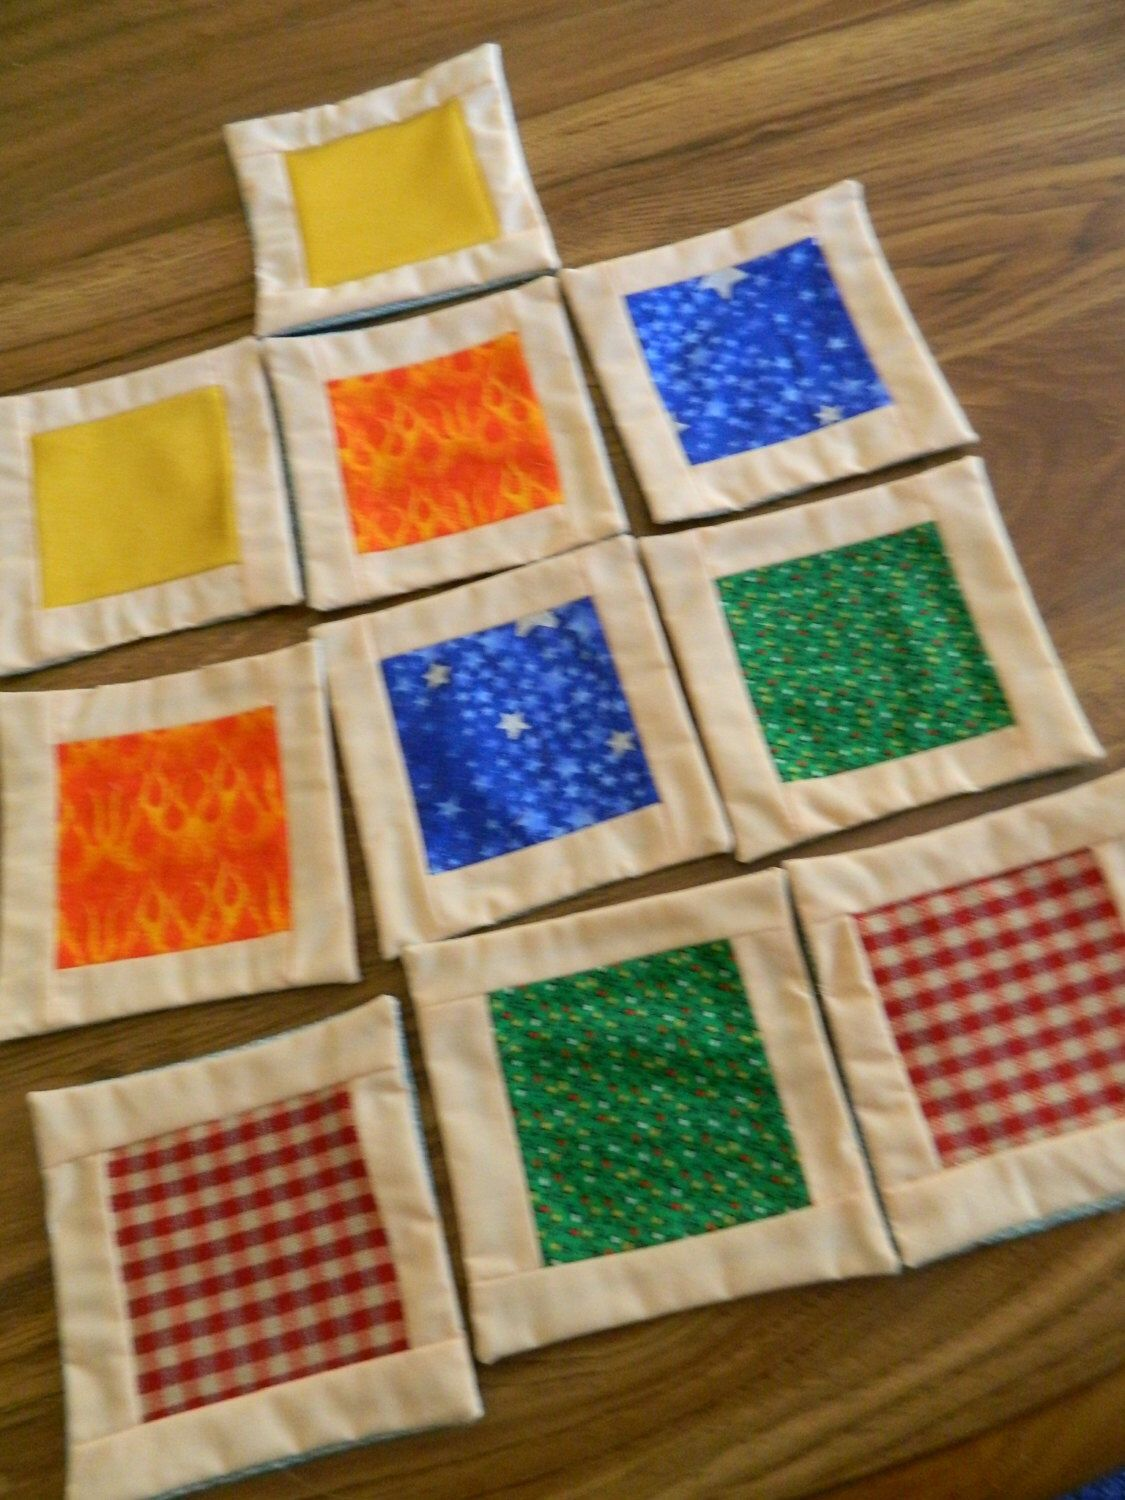 5 COLOR MEMORY MATCHING Game For All, Fabric Tile Game & Drawstring Bag, Alzheimers Activity, Nursing Home Game, Concentration, Toddler Game by DebsBusyNeedle on Etsy https://www.etsy.com/listing/474326666/5-color-memory-matching-game-for-all